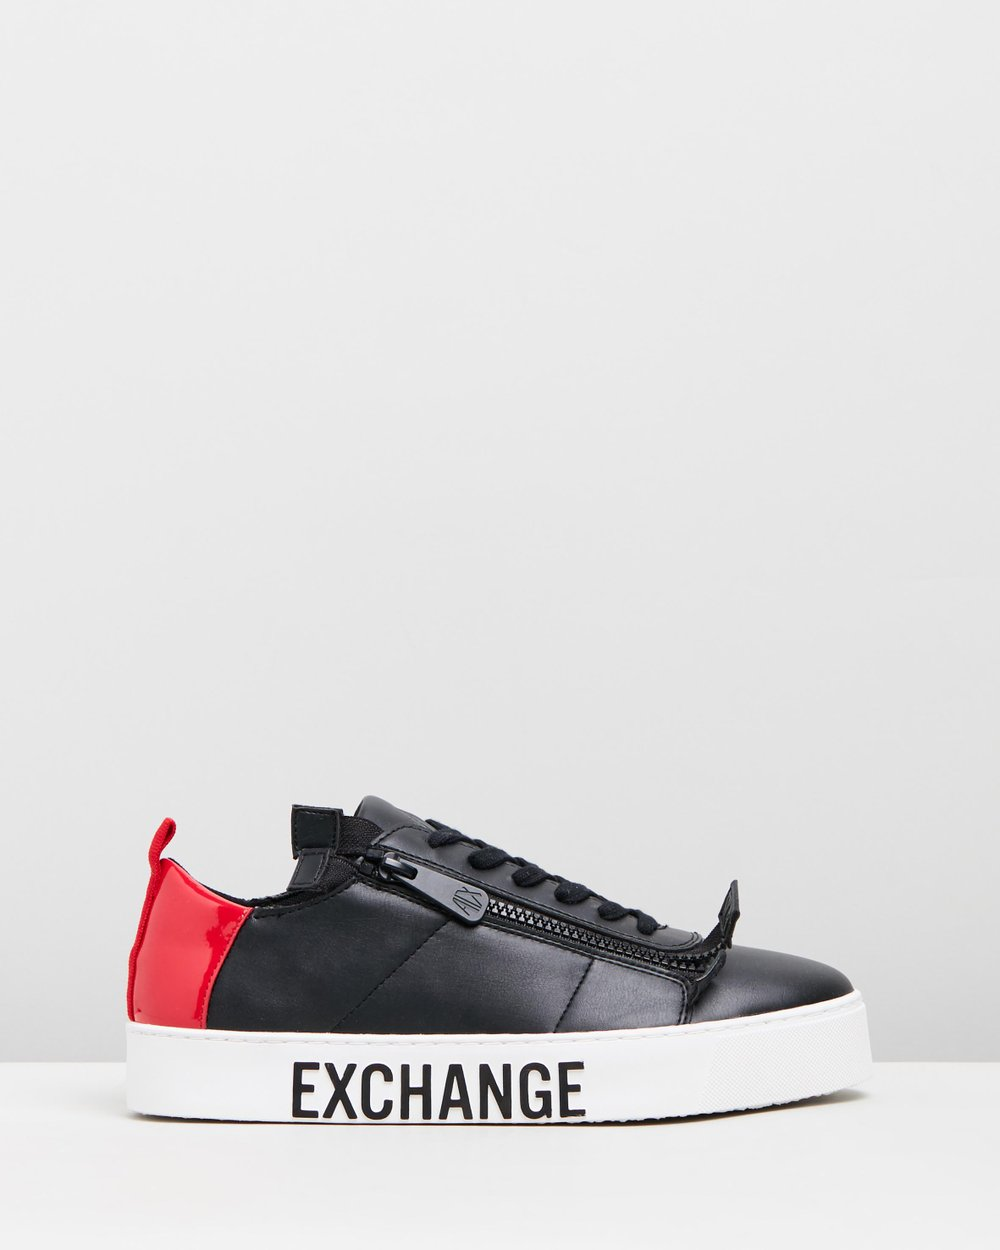 7503f0298 XDX005 Sneakers by Armani Exchange Online